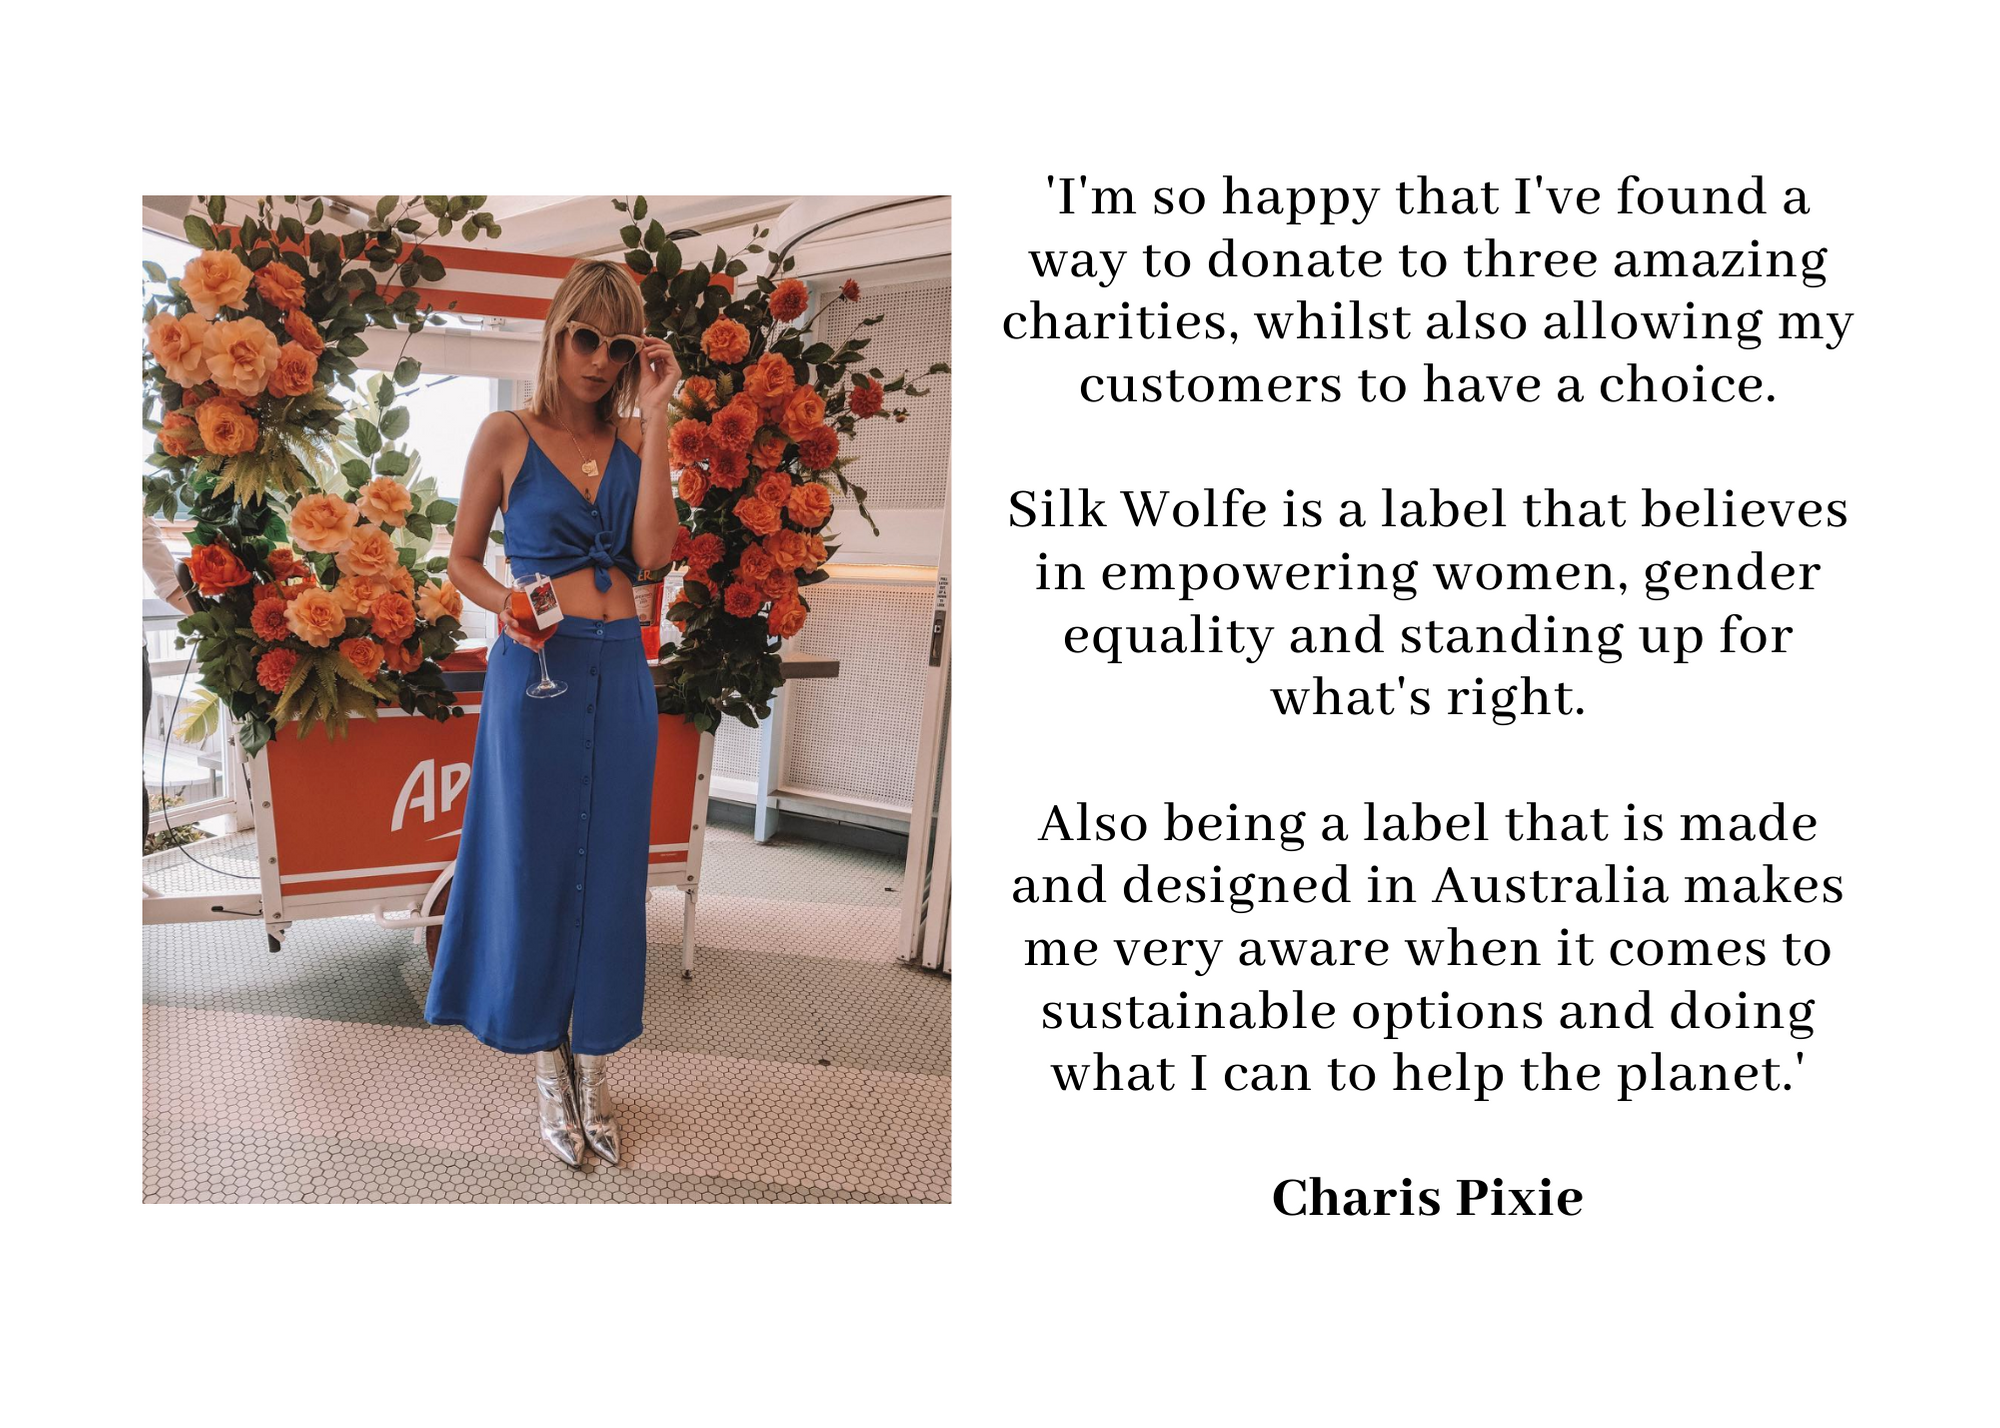 A message from the founder of Silk Wolfe, Charis Pixie, discussing her charity choices